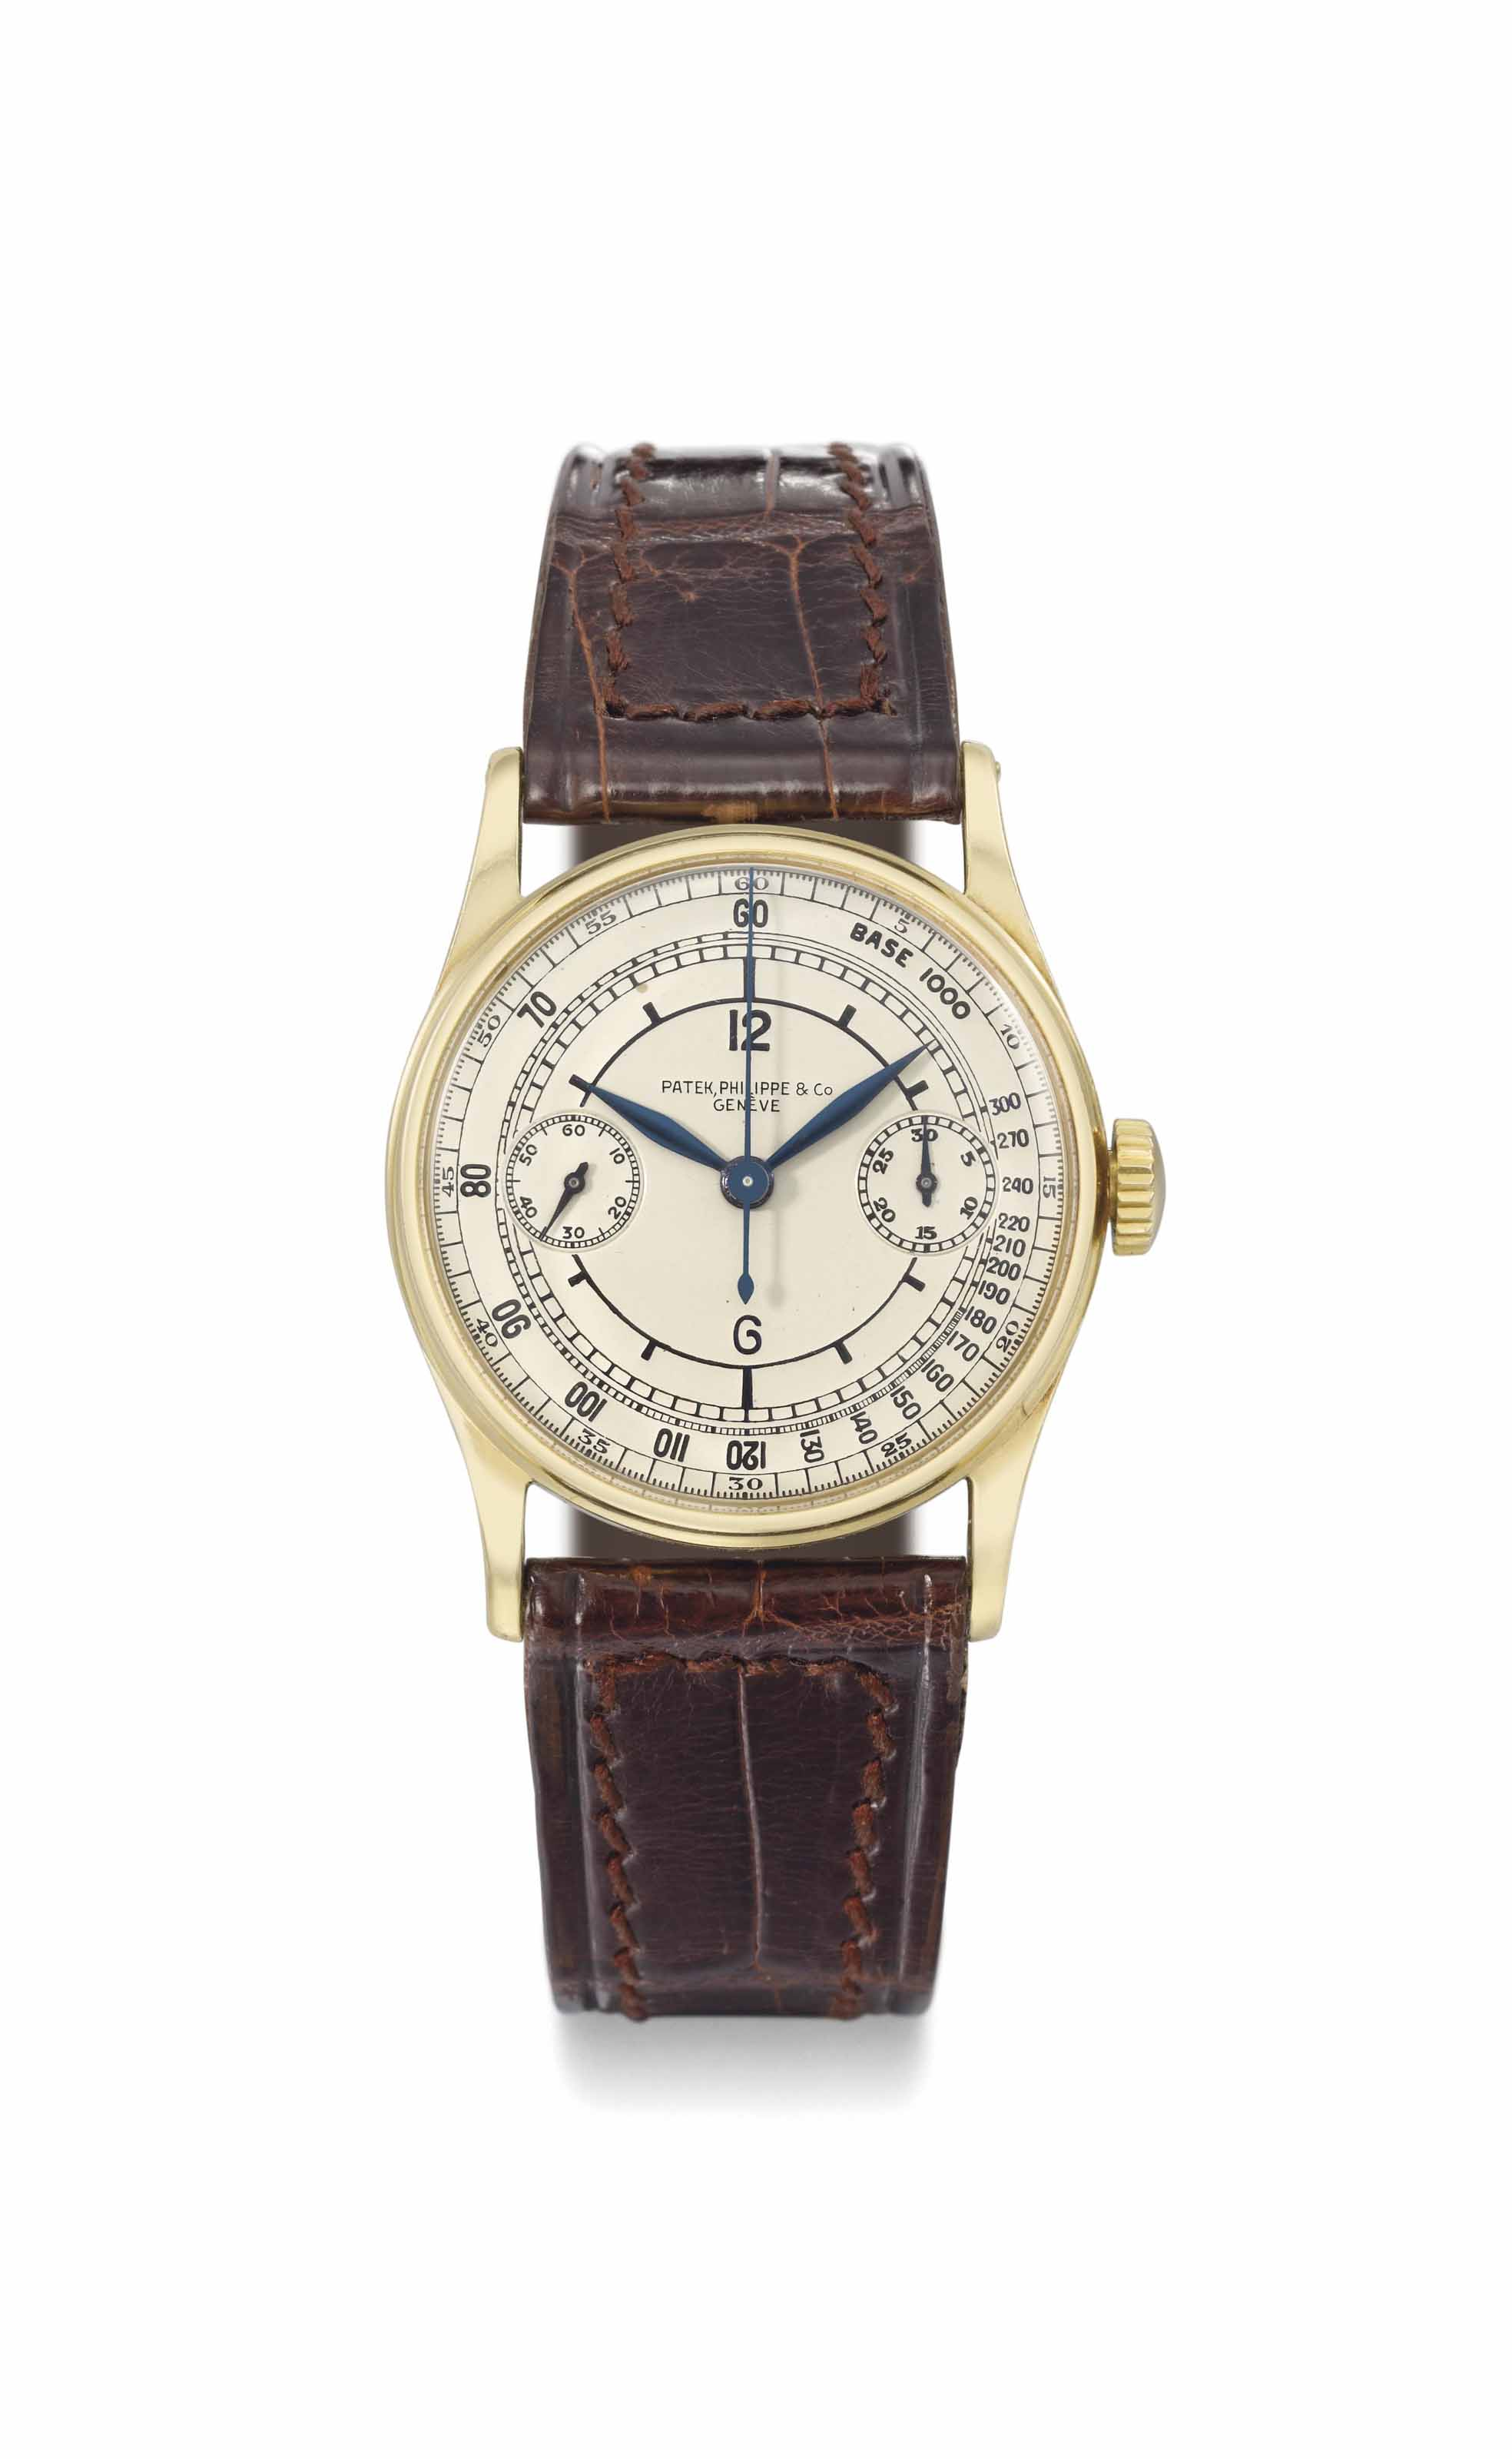 Patek Philippe. An extremely fine, rare and early 18K gold co-axial single button chronograph wristwatch with silvered sector dial